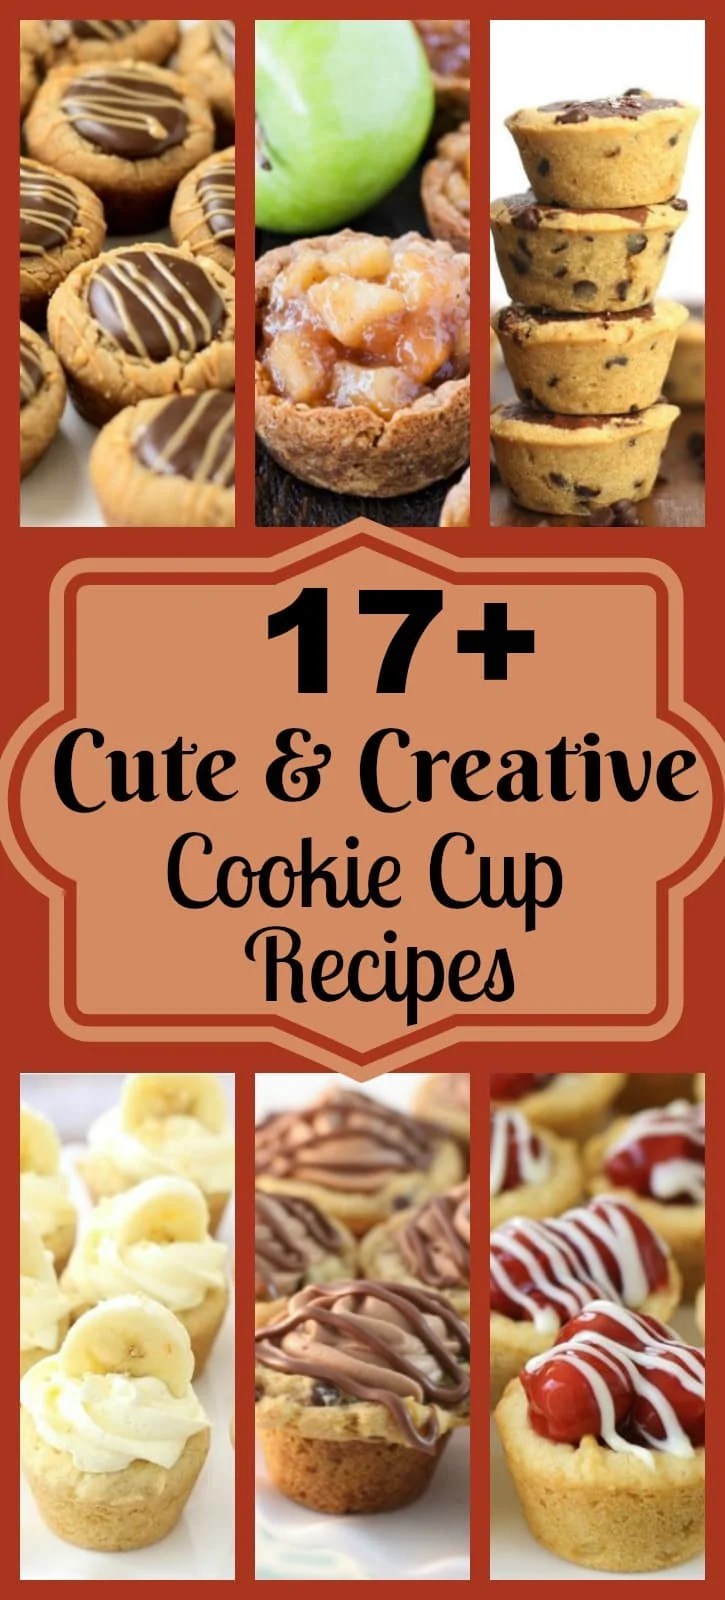 Cookie Cup Recipes are some of my very favorite desserts to make for any gathering! These bite-sized treats are filled with a variety of flavors and are easy to make. They make a good amount, are the perfect bite size treat and are so delicious.